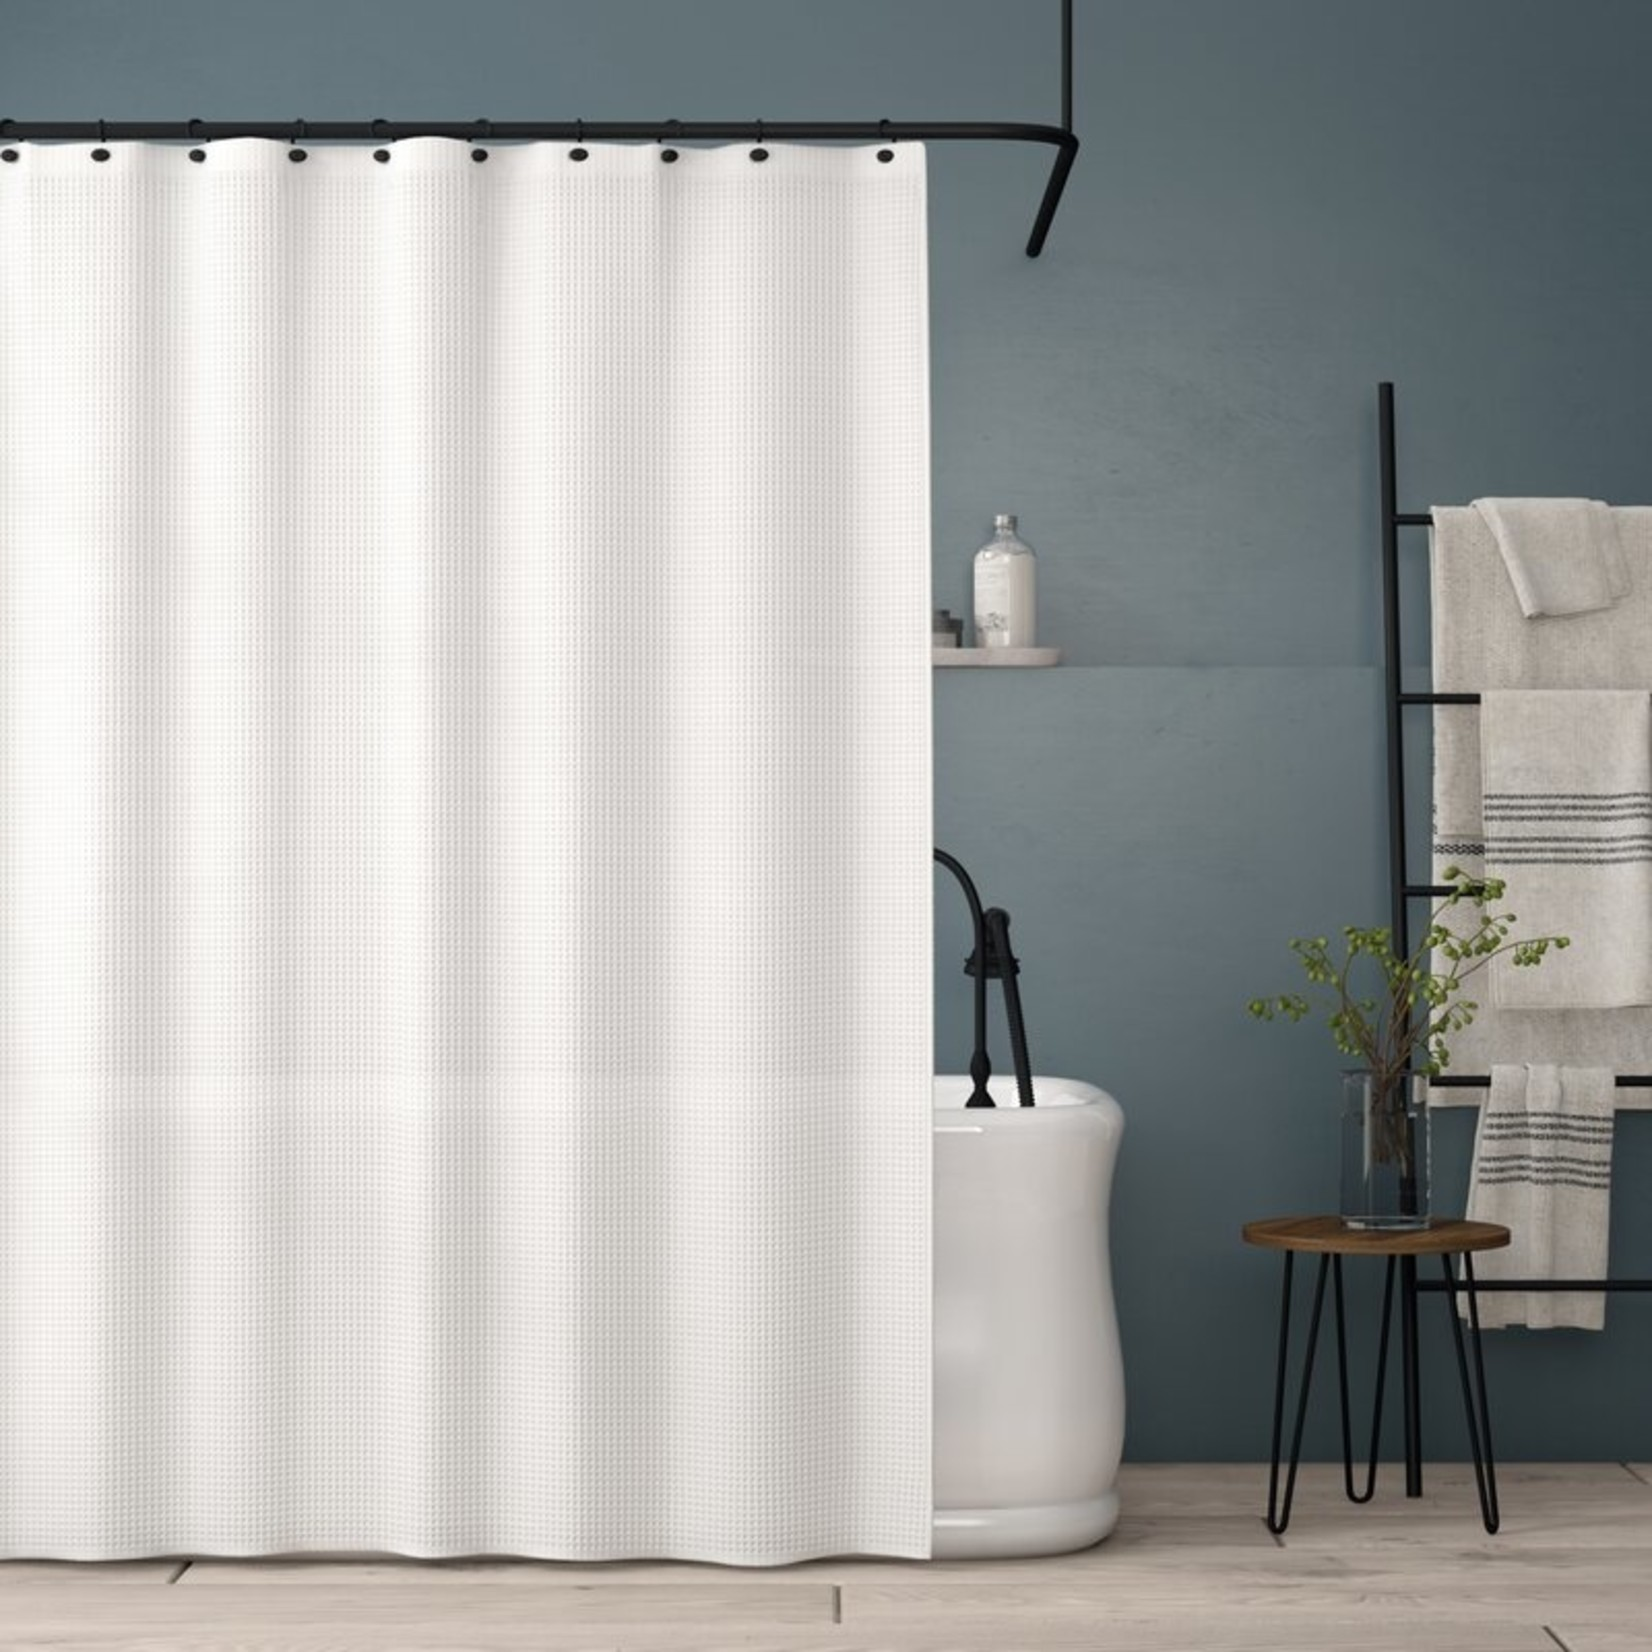 *Simsbury Solid Color Single Shower Curtain - White